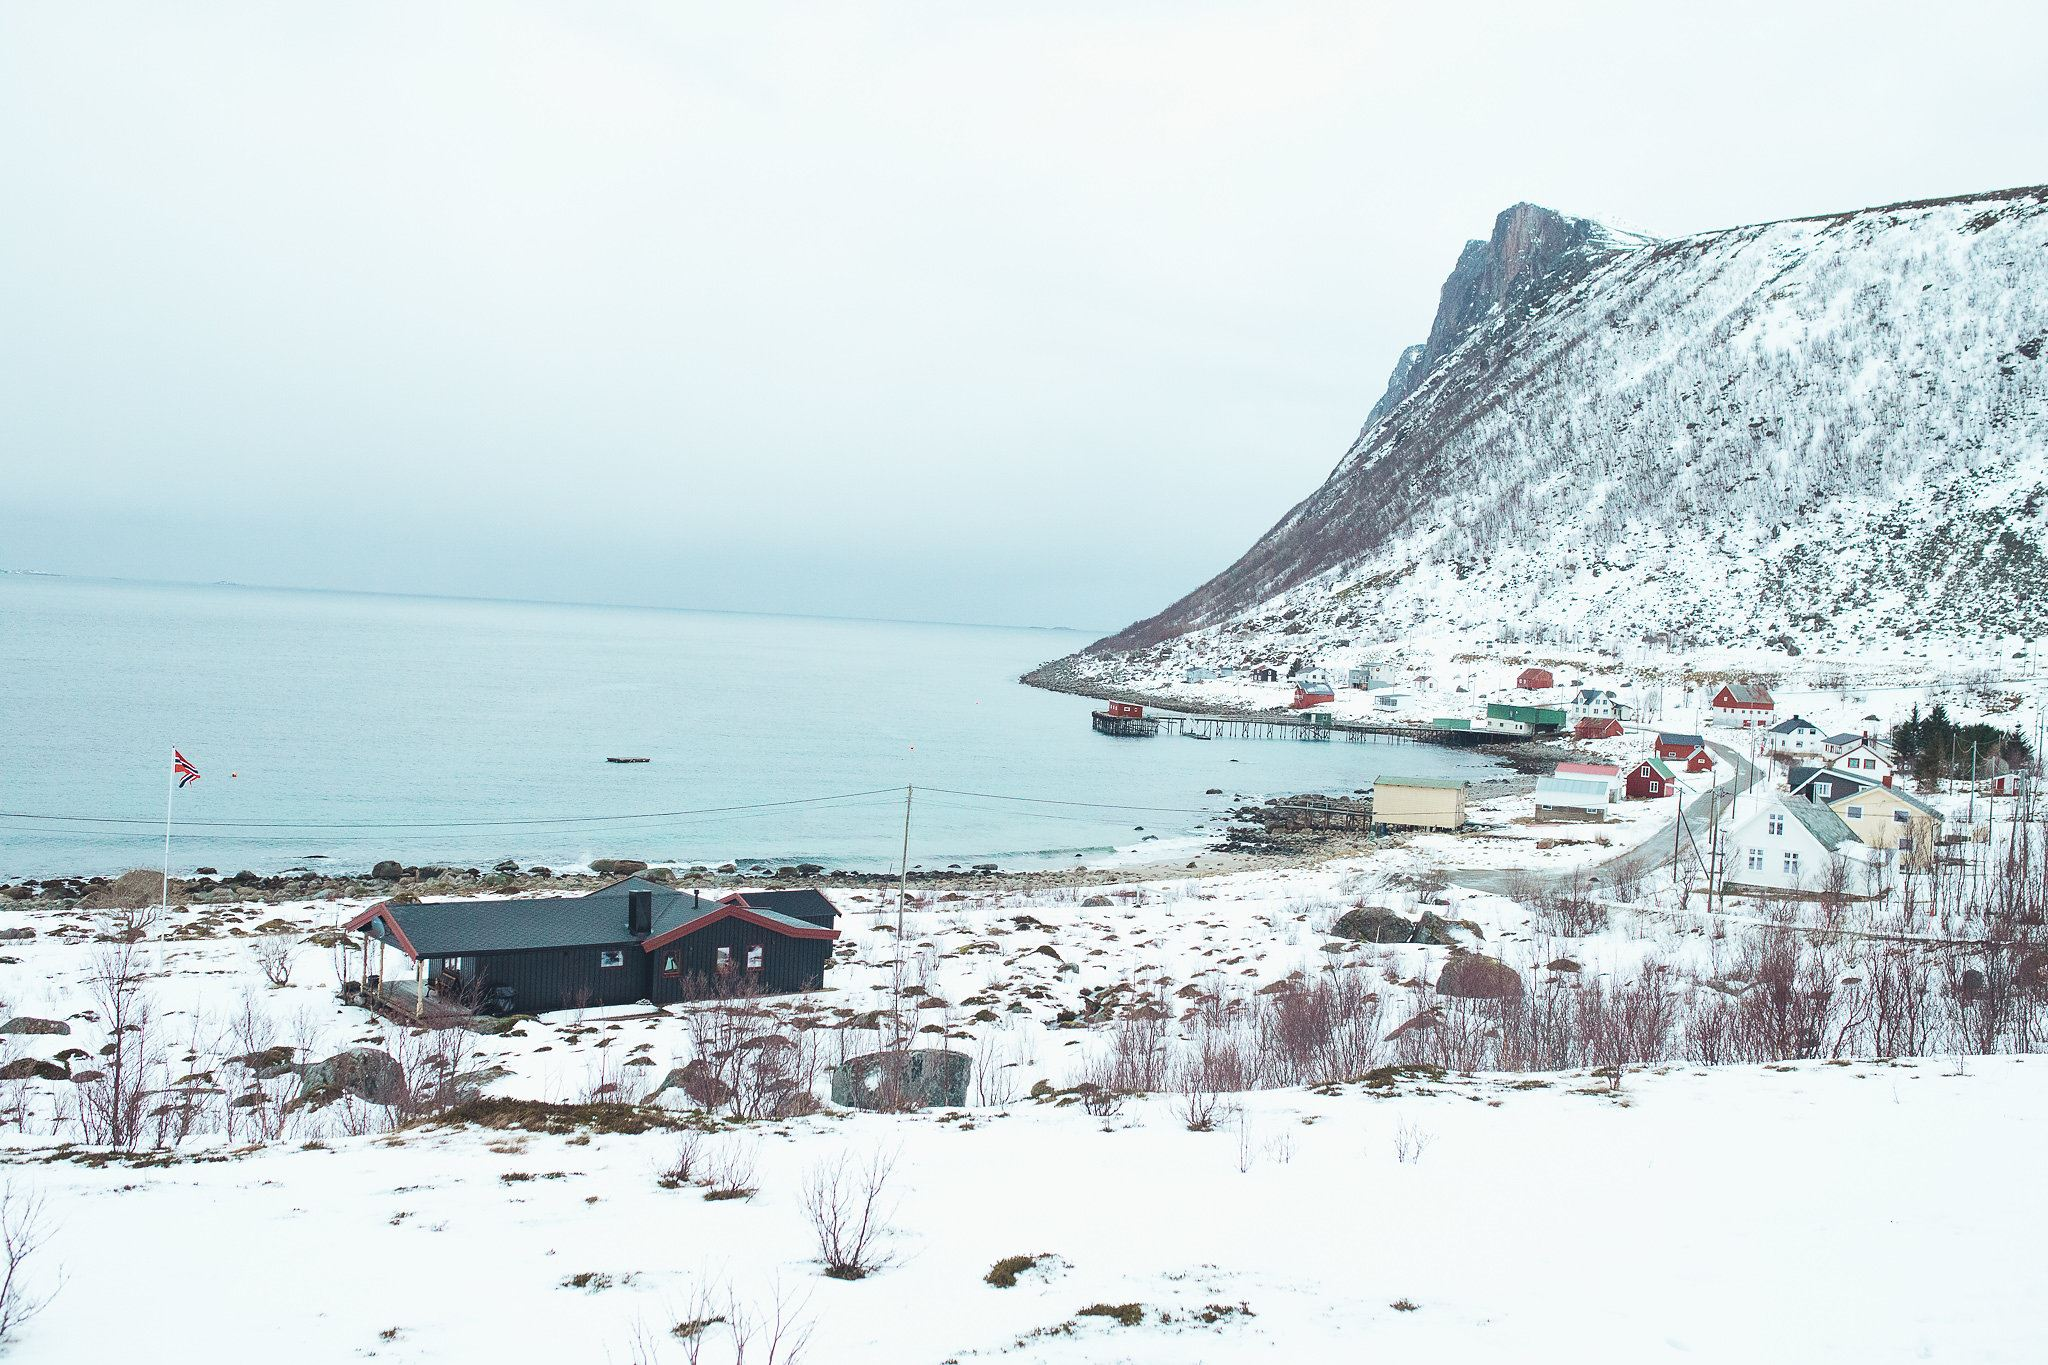 Arctic Fjord Sightseeing by Mini Bus - Pukka Travels